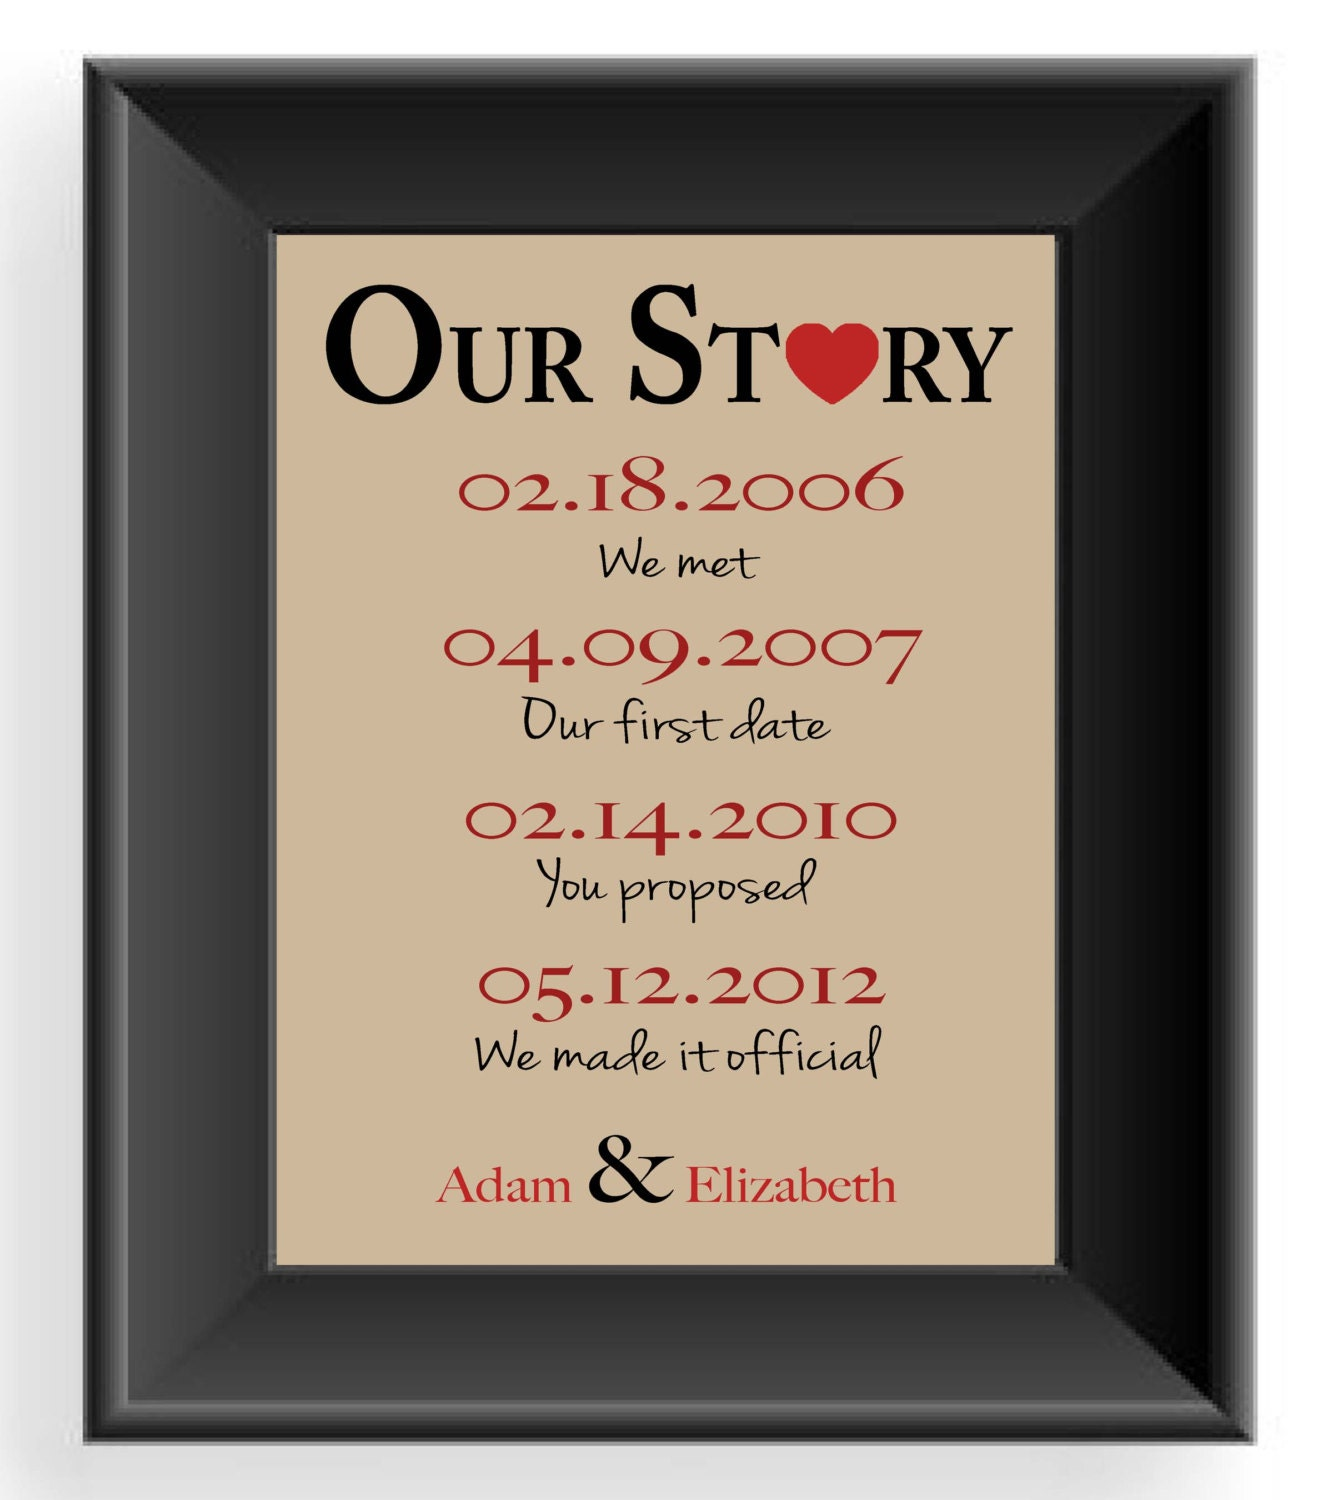 2nd Wedding Anniversary Gifts For Him South Africa : First Anniversary Gift Gift for Husband Important Dates